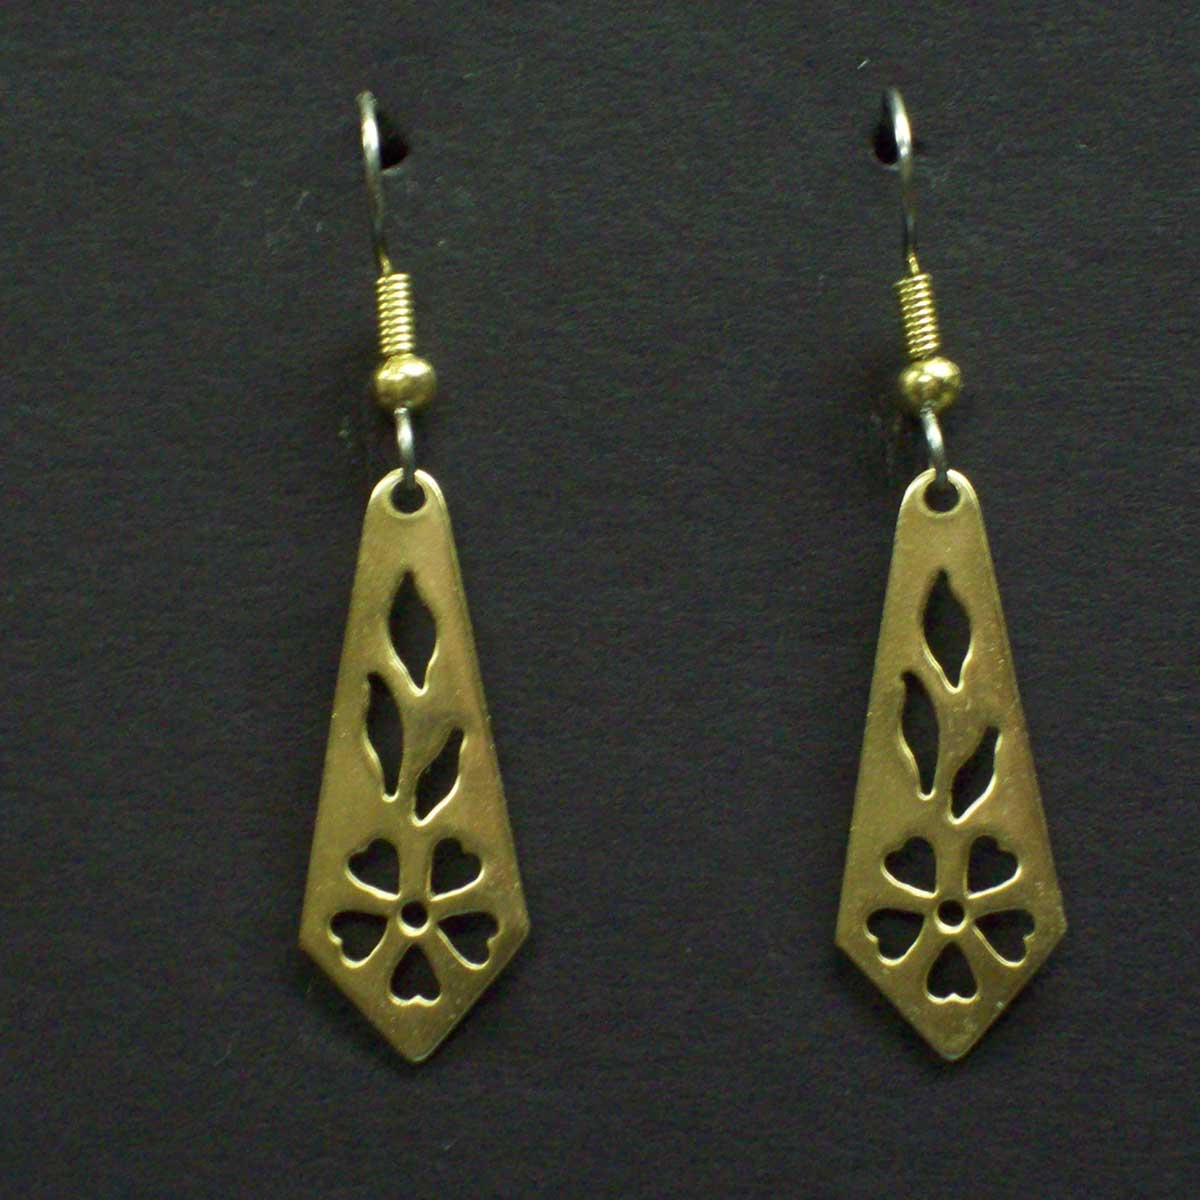 Small Cut Out Pattern Earrings